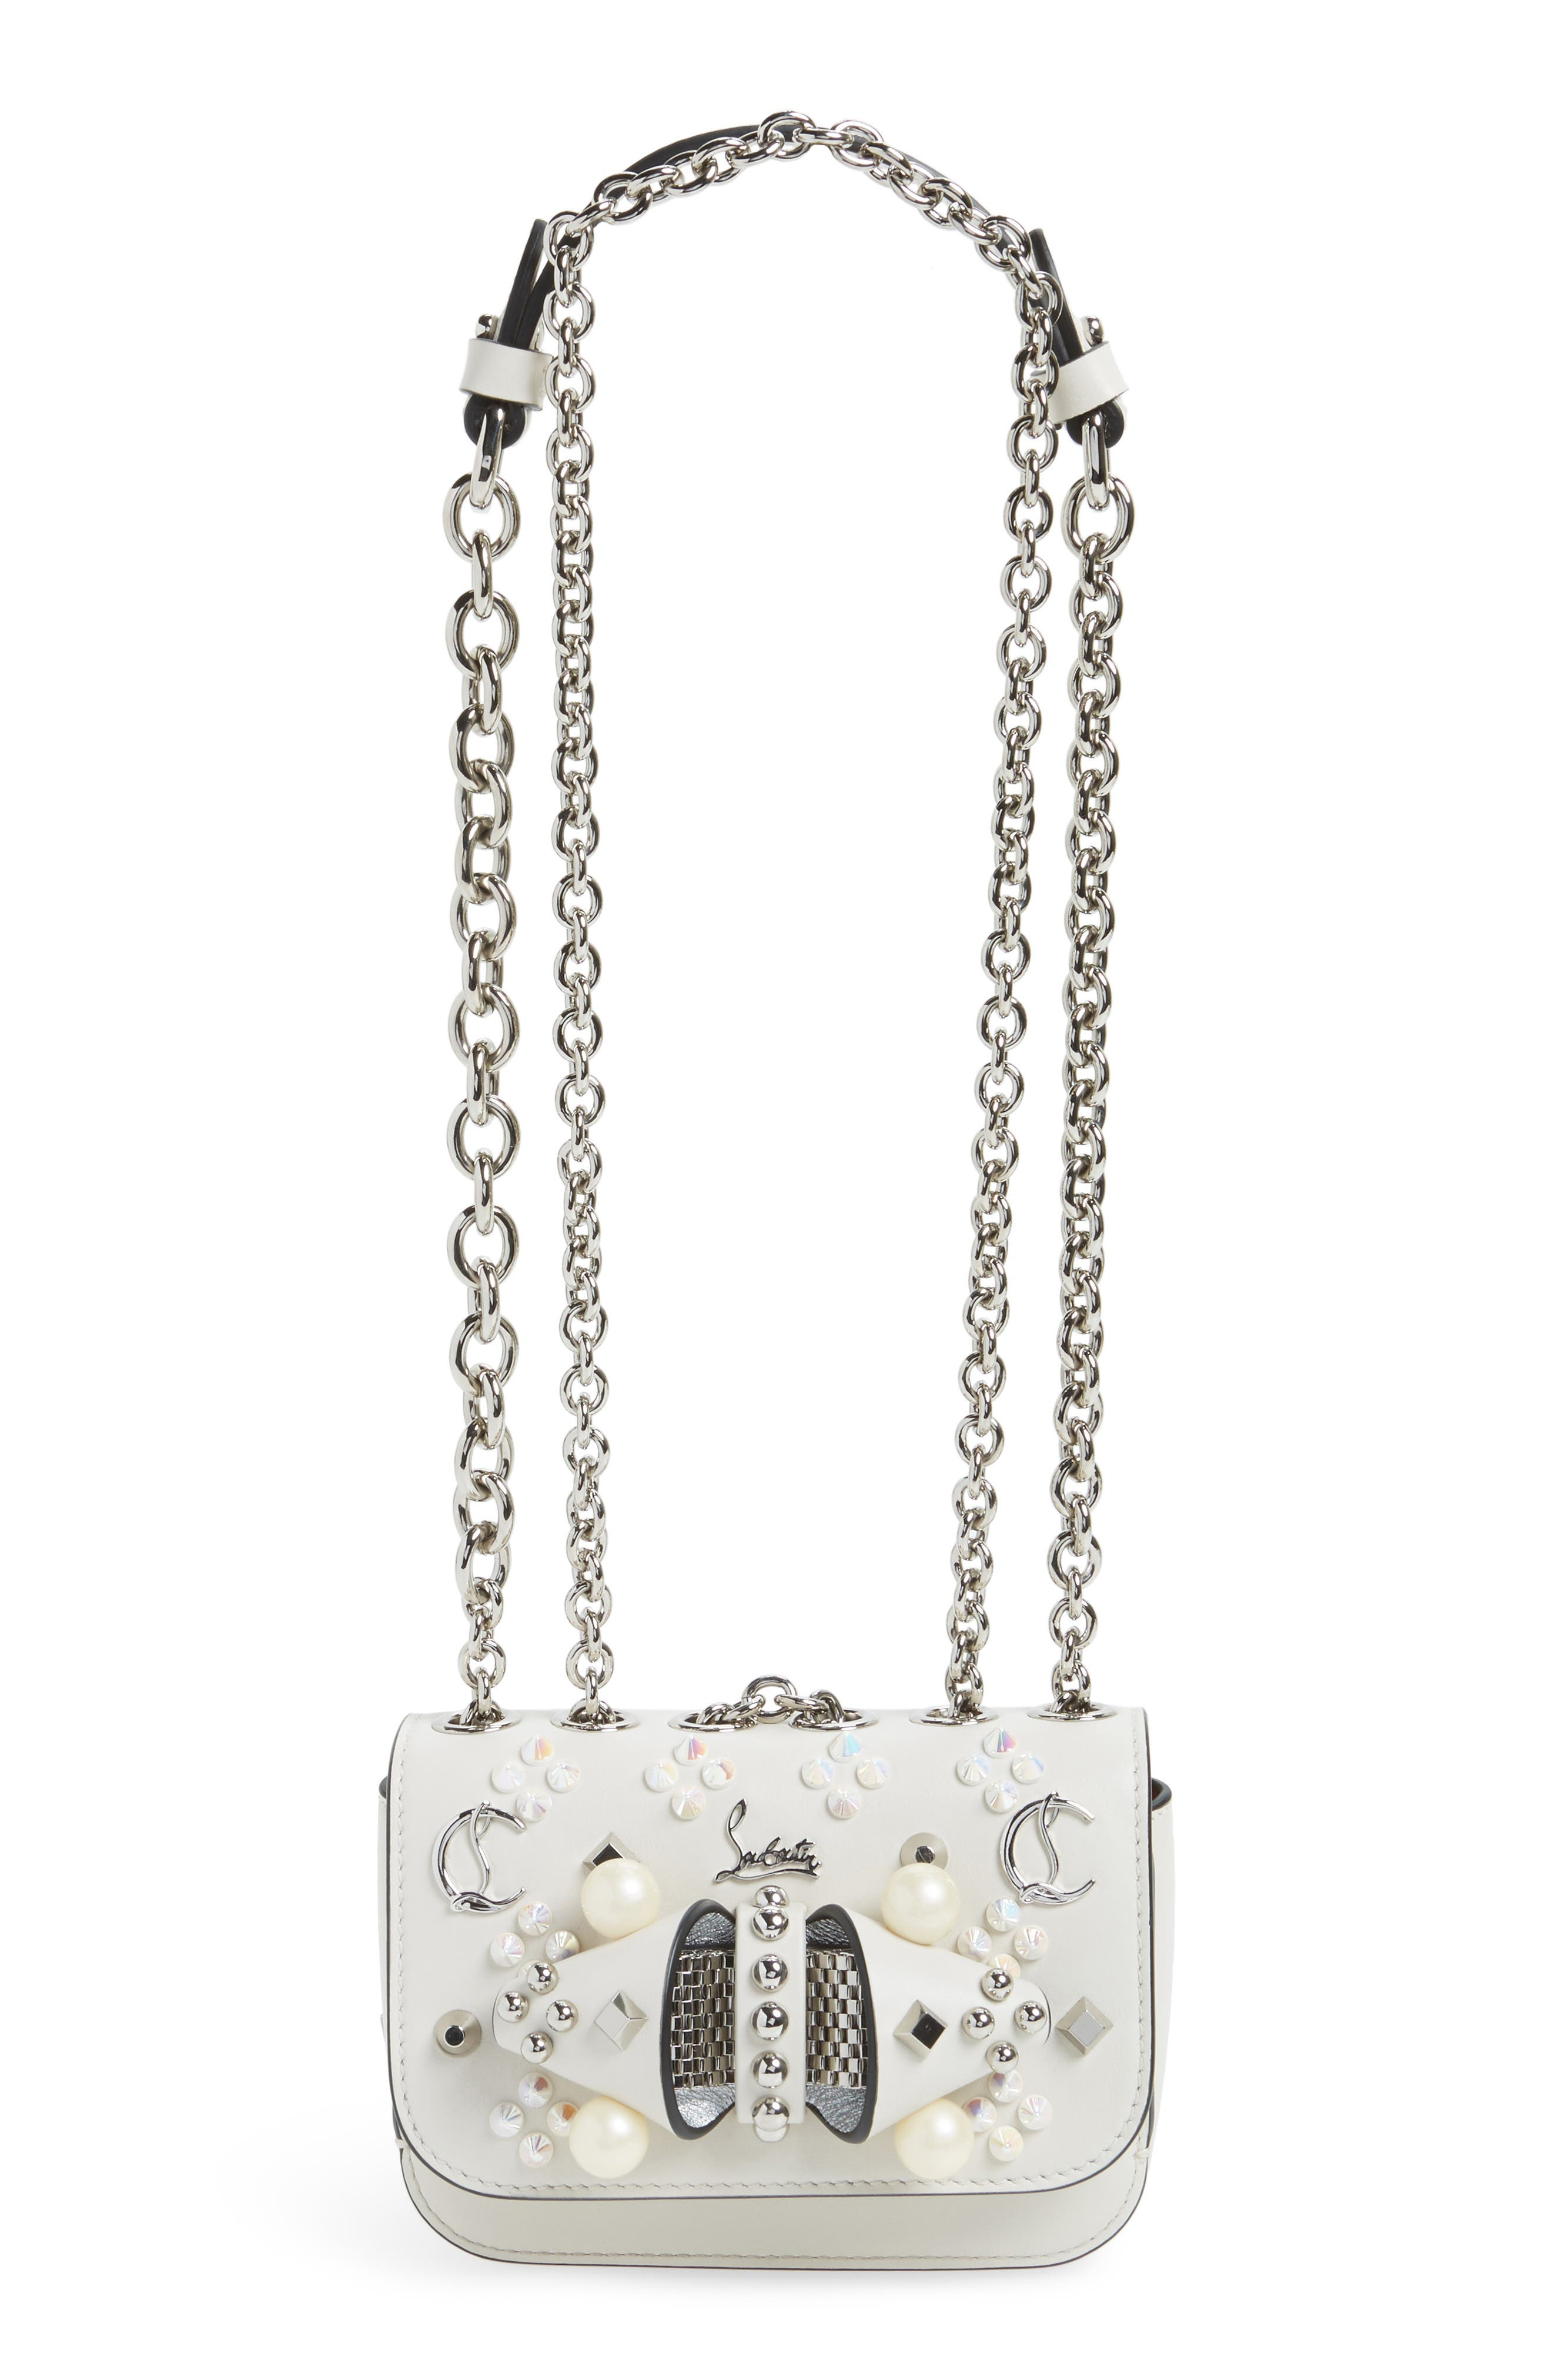 Christian Louboutin Sweet Charity Spiked Calfskin Shoulder/Crossbody Bag